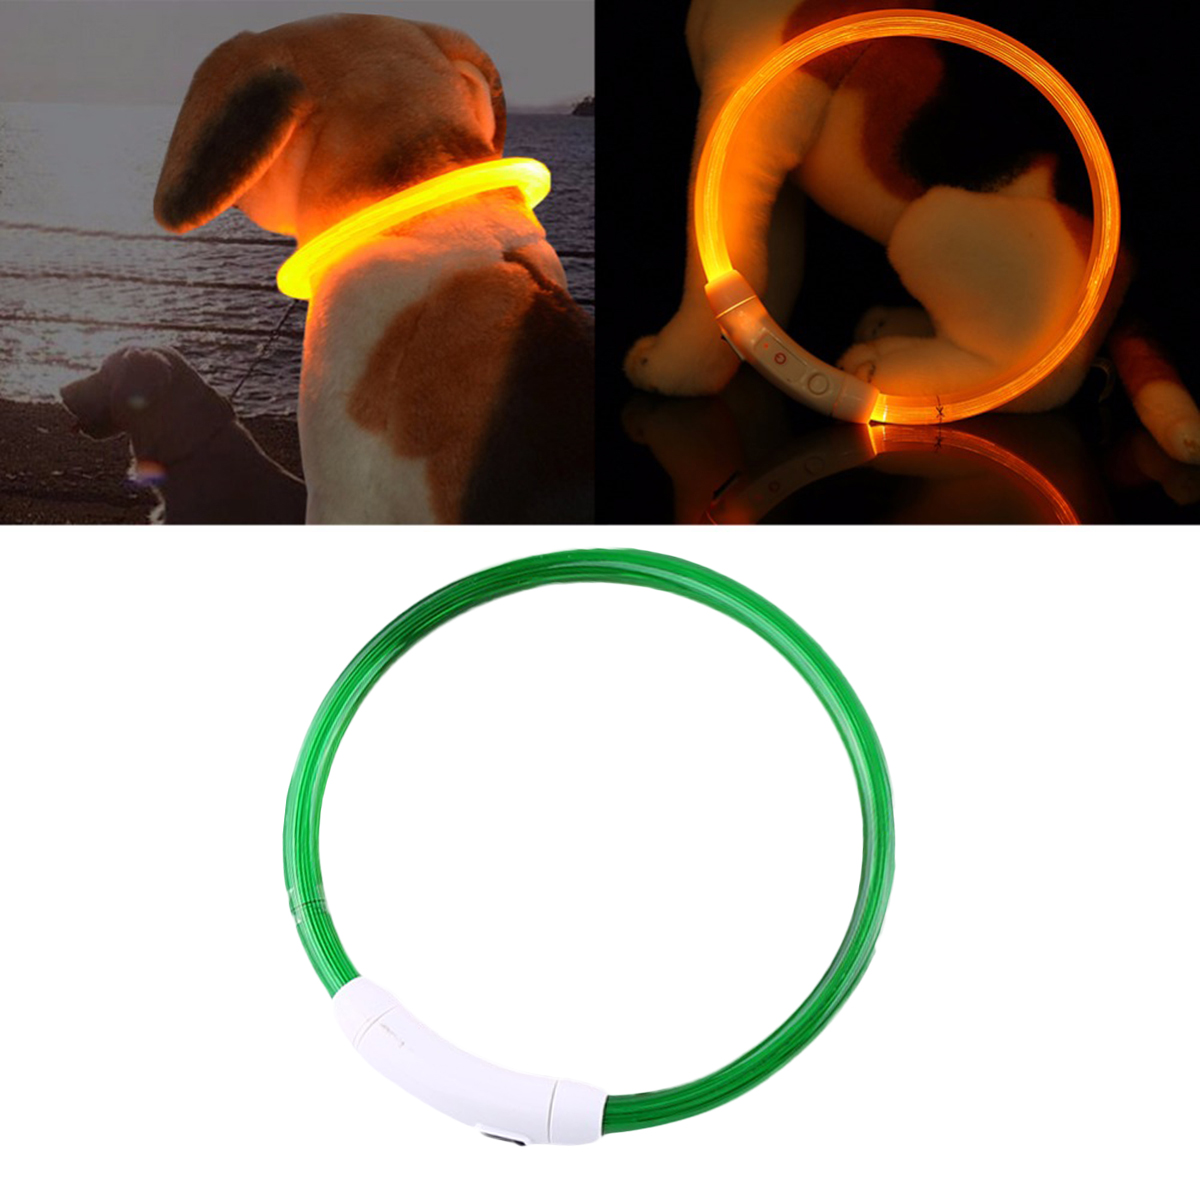 Pet Collar, Legendog Creative Rechargeable LED Light Dog Collar Cat Collar with USB Cable for Night Safety